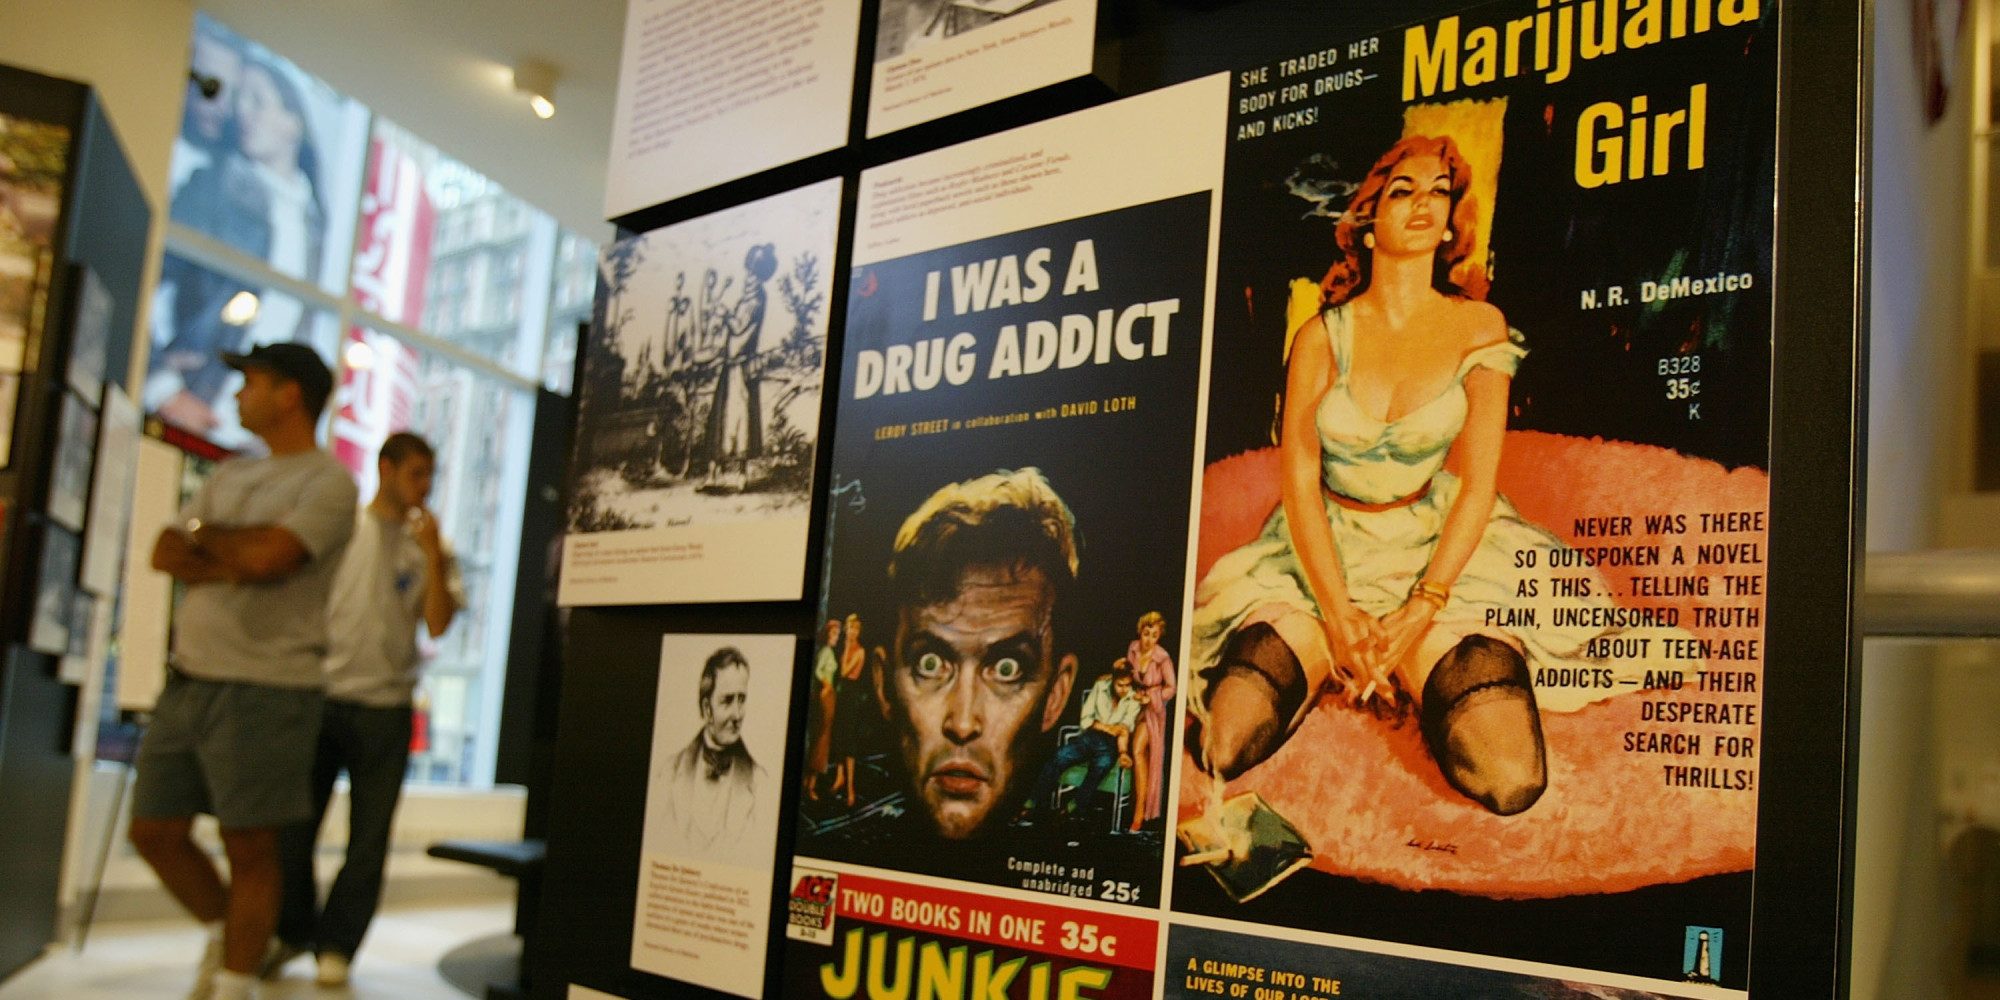 dea museum washington